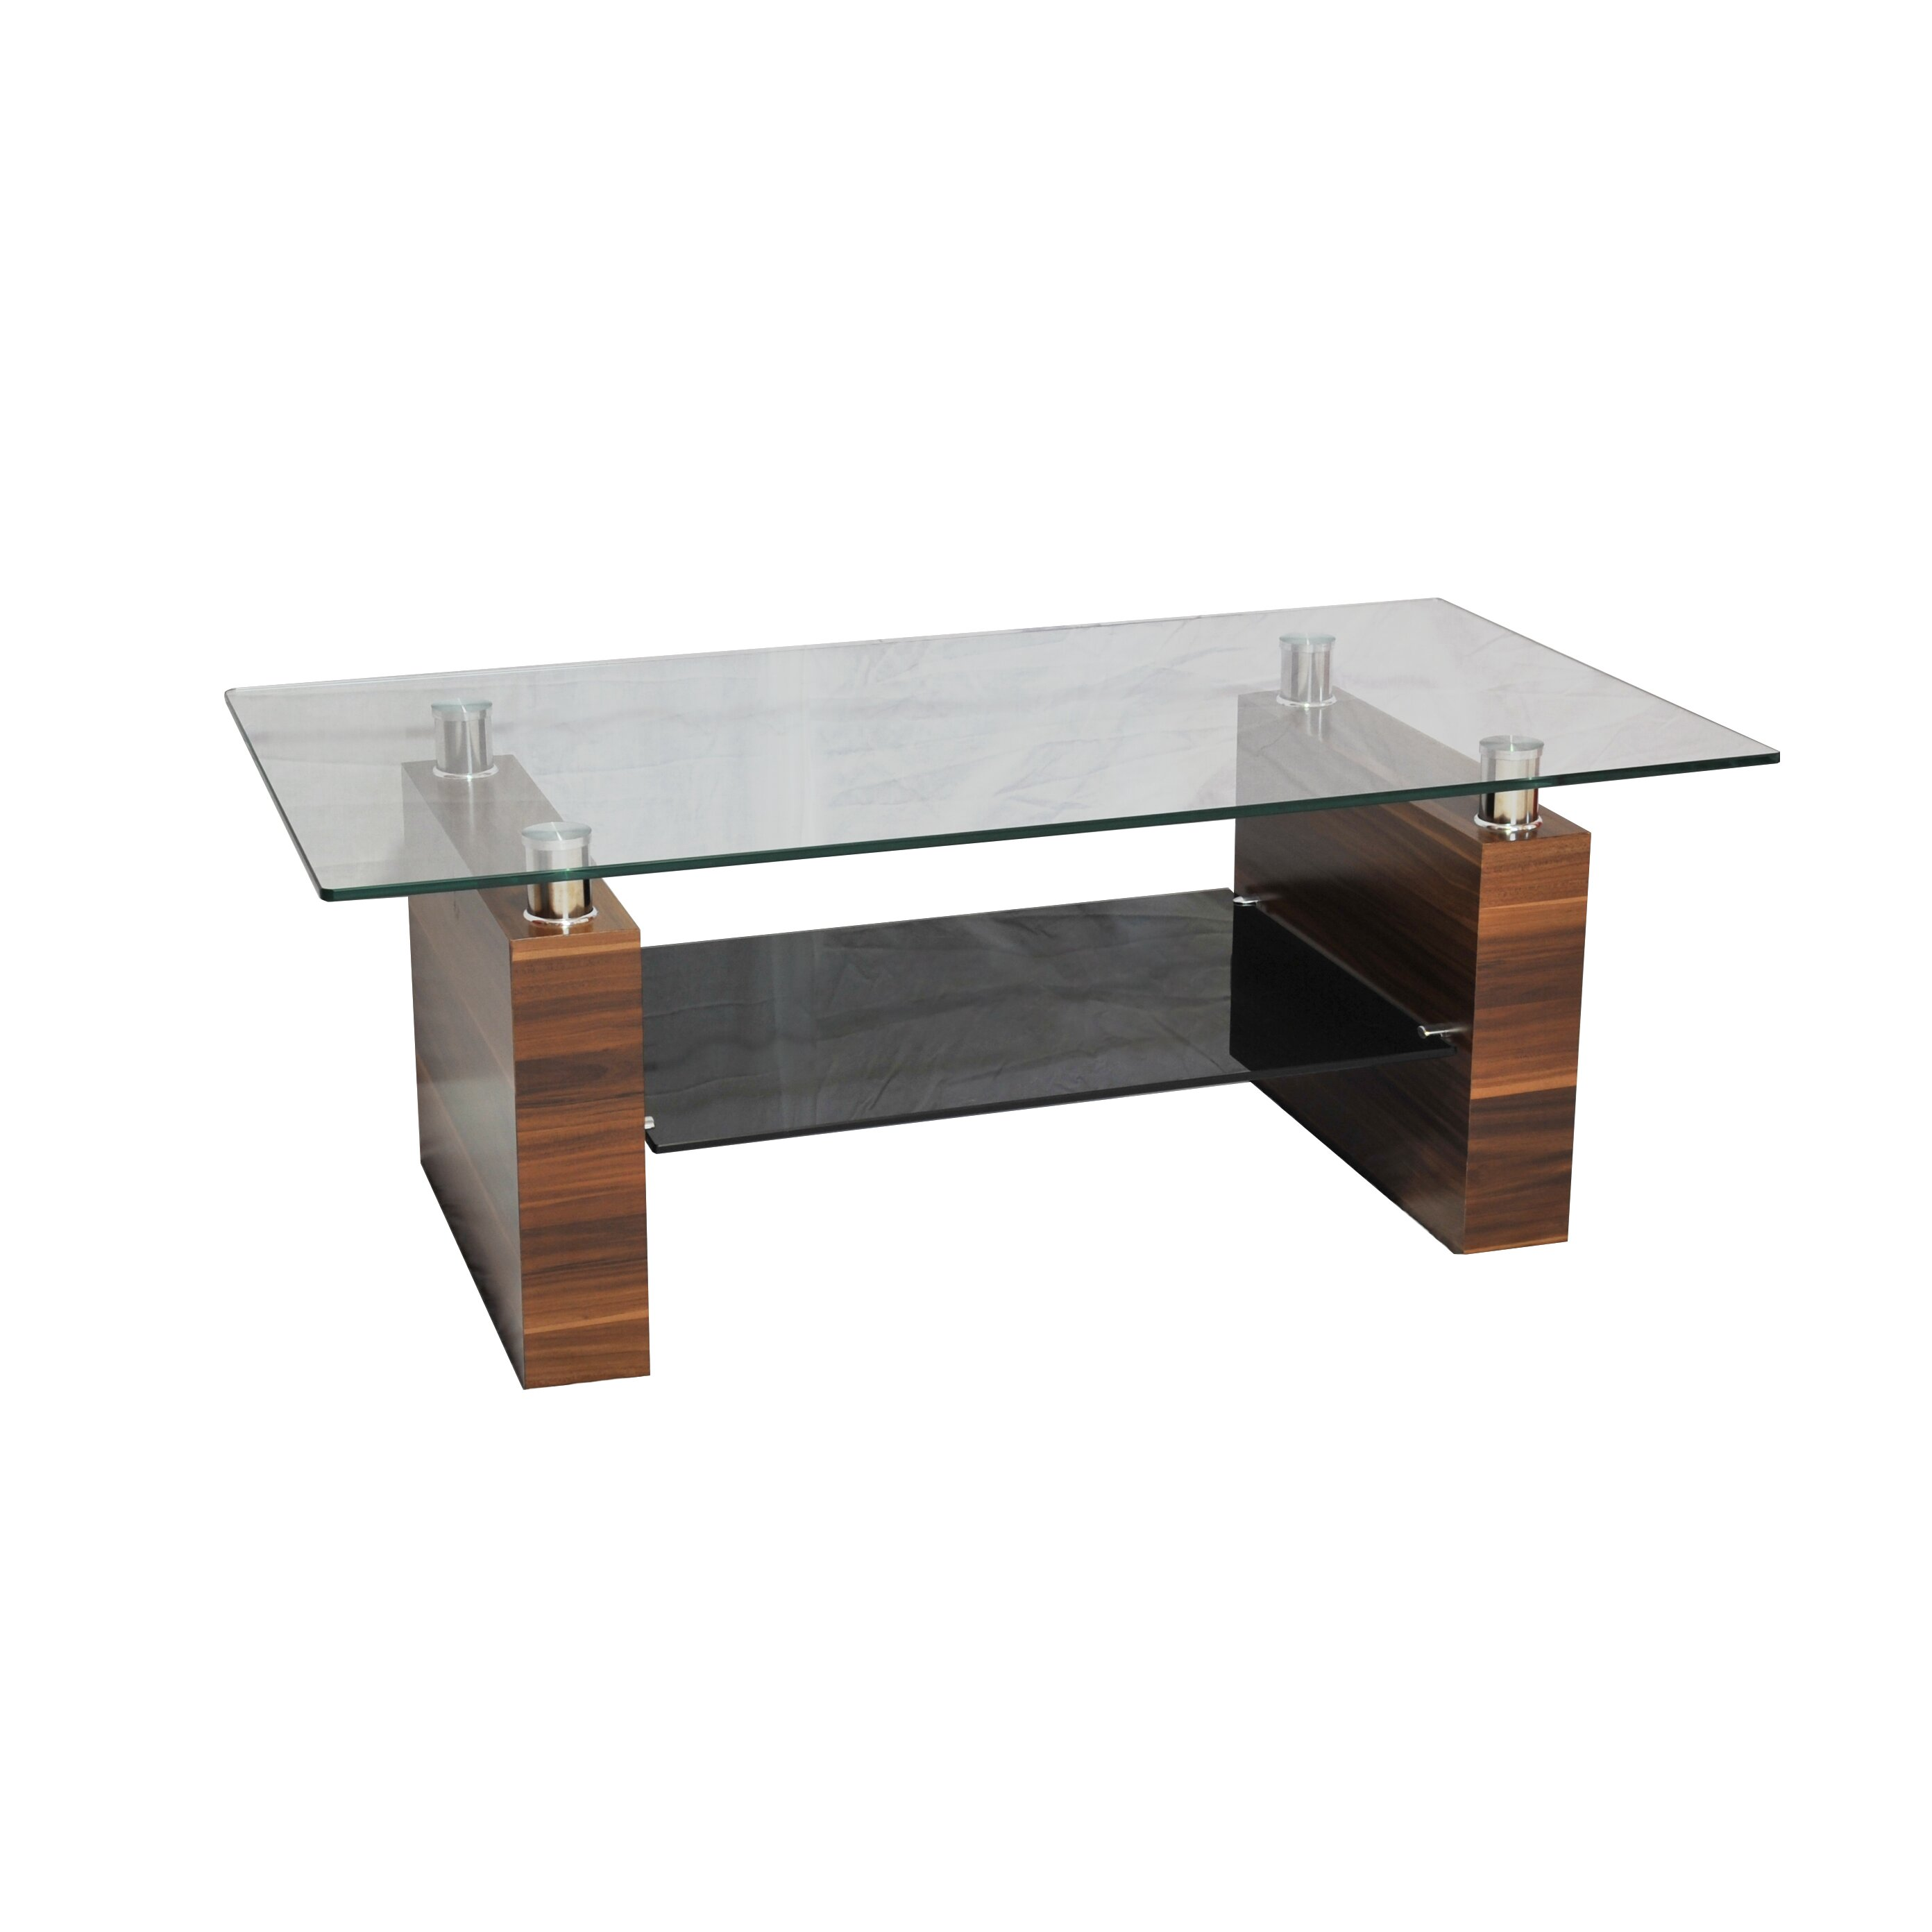 Tier One Designs Coffee Table With Mdf Base Reviews Wayfair